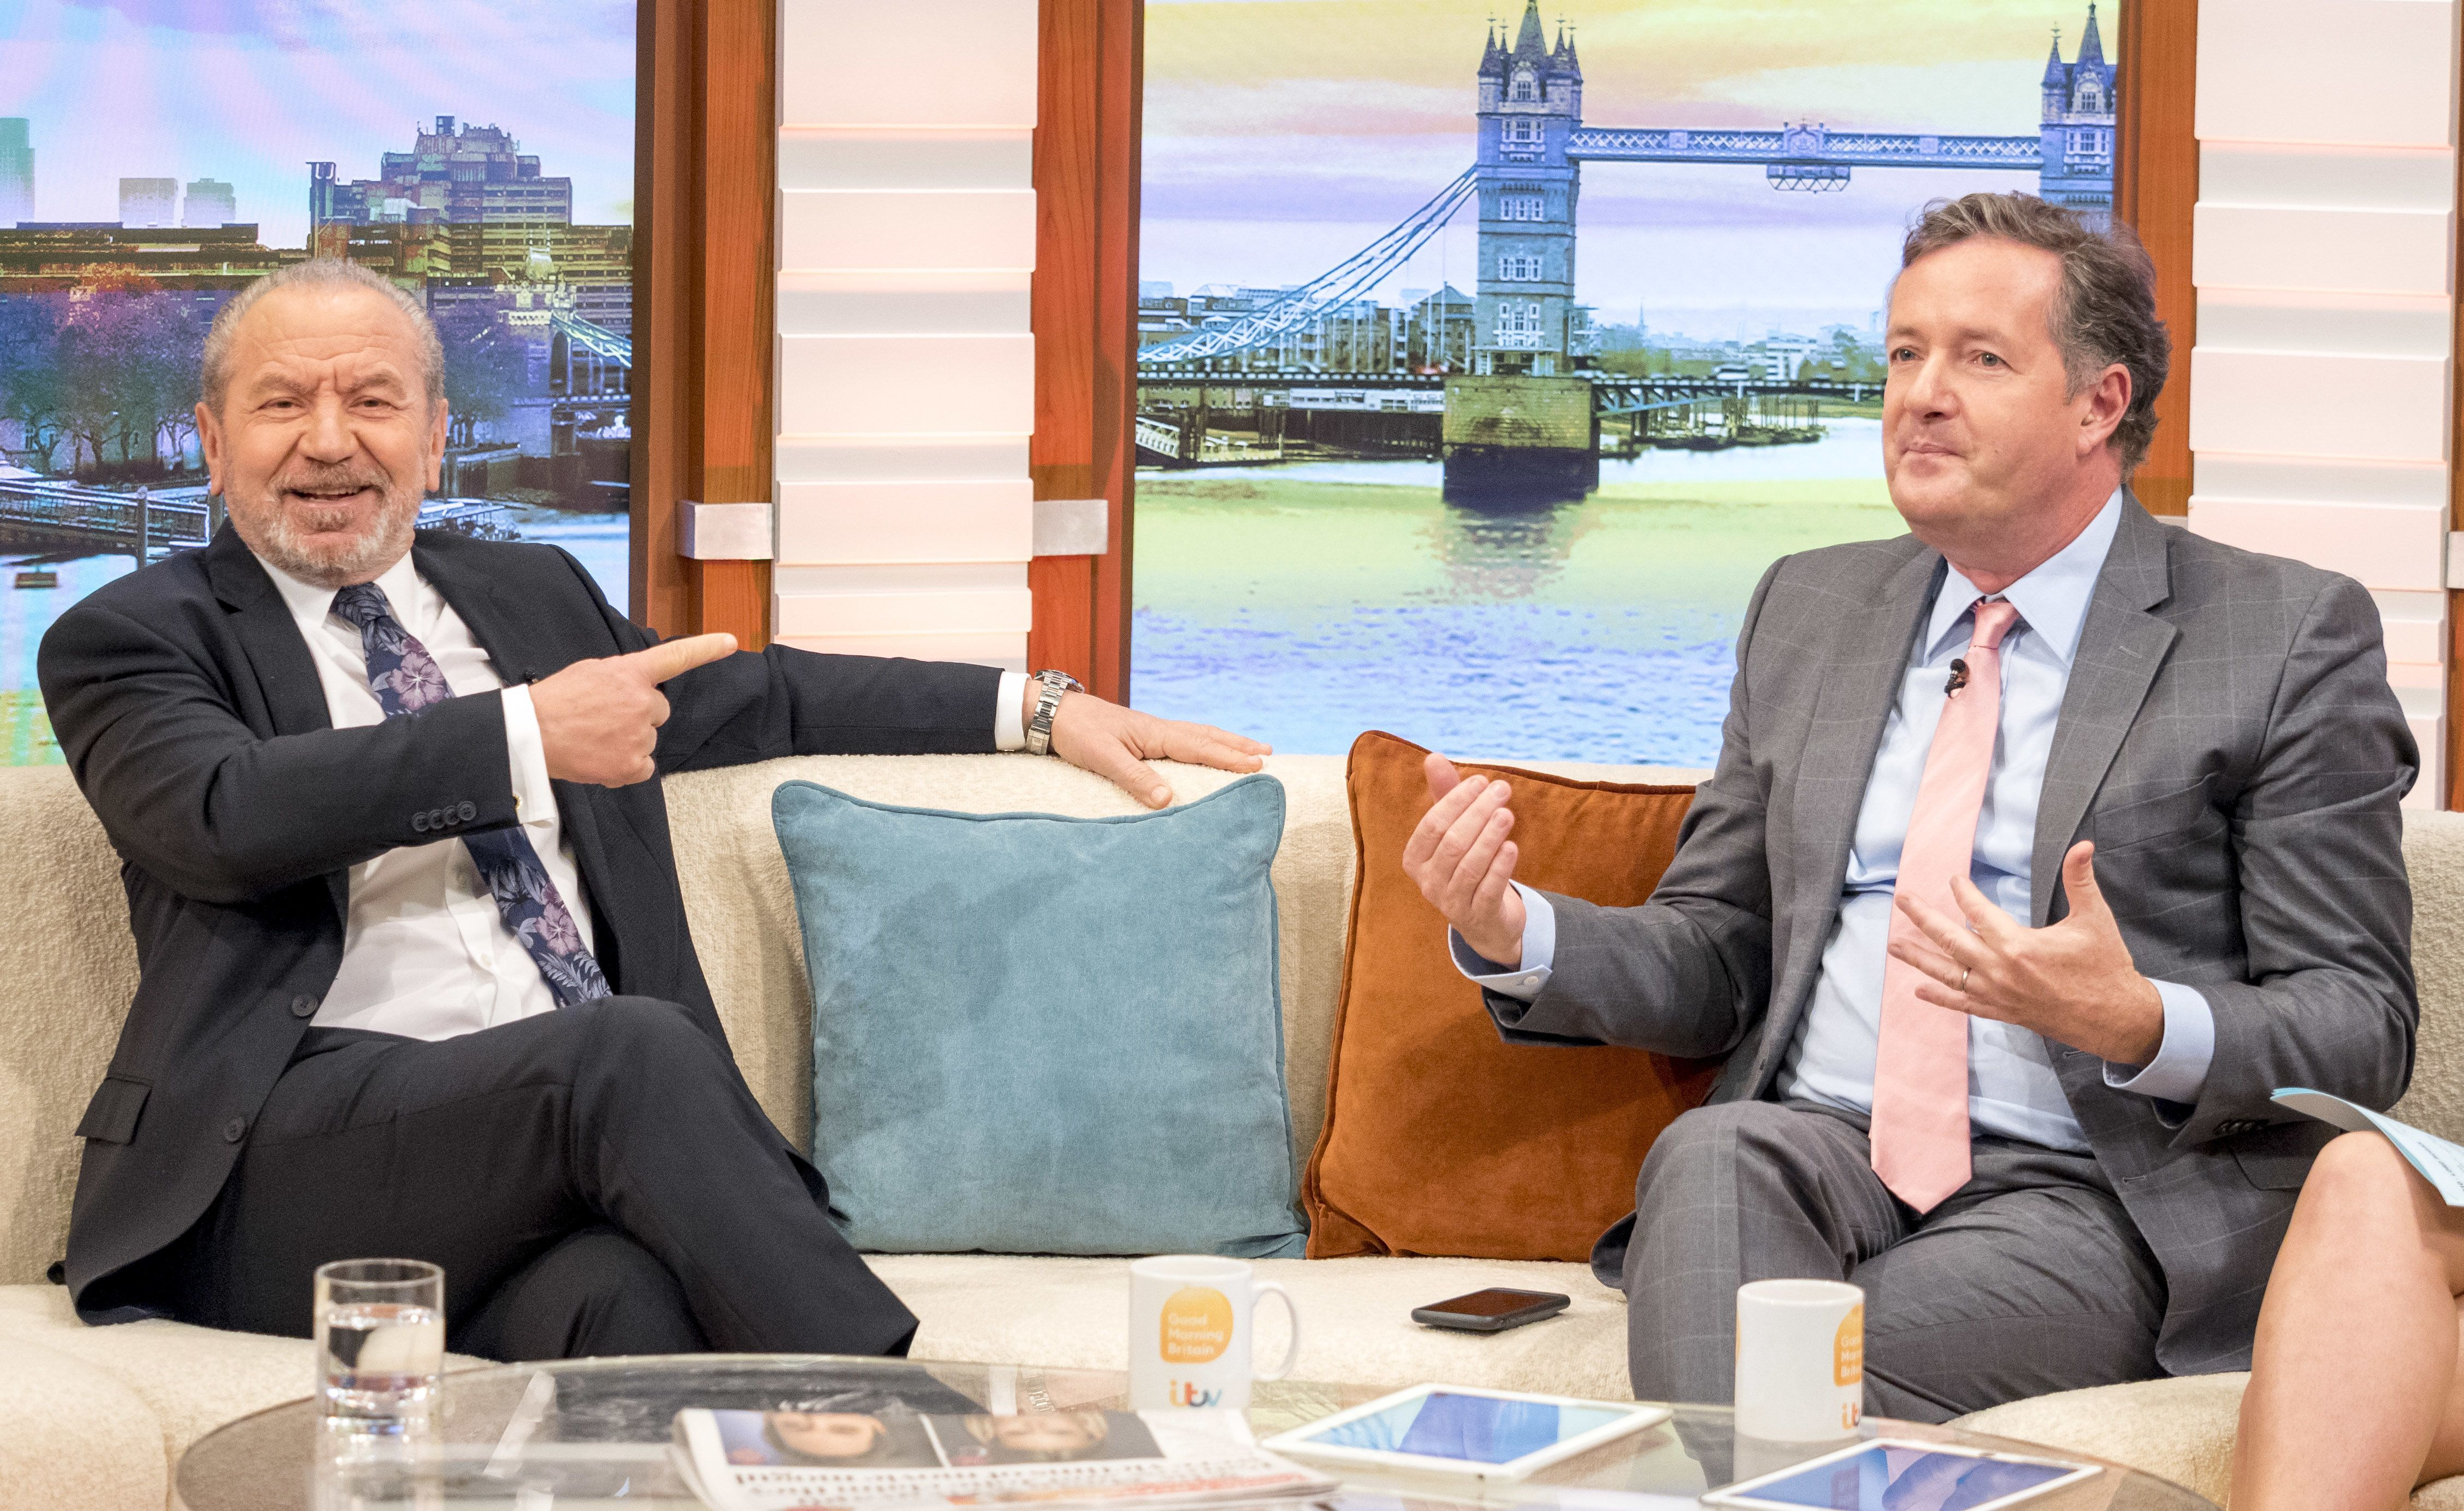 Piers Morgan Concedes Defeats To Old Foe Lord Sugar After Weight Loss